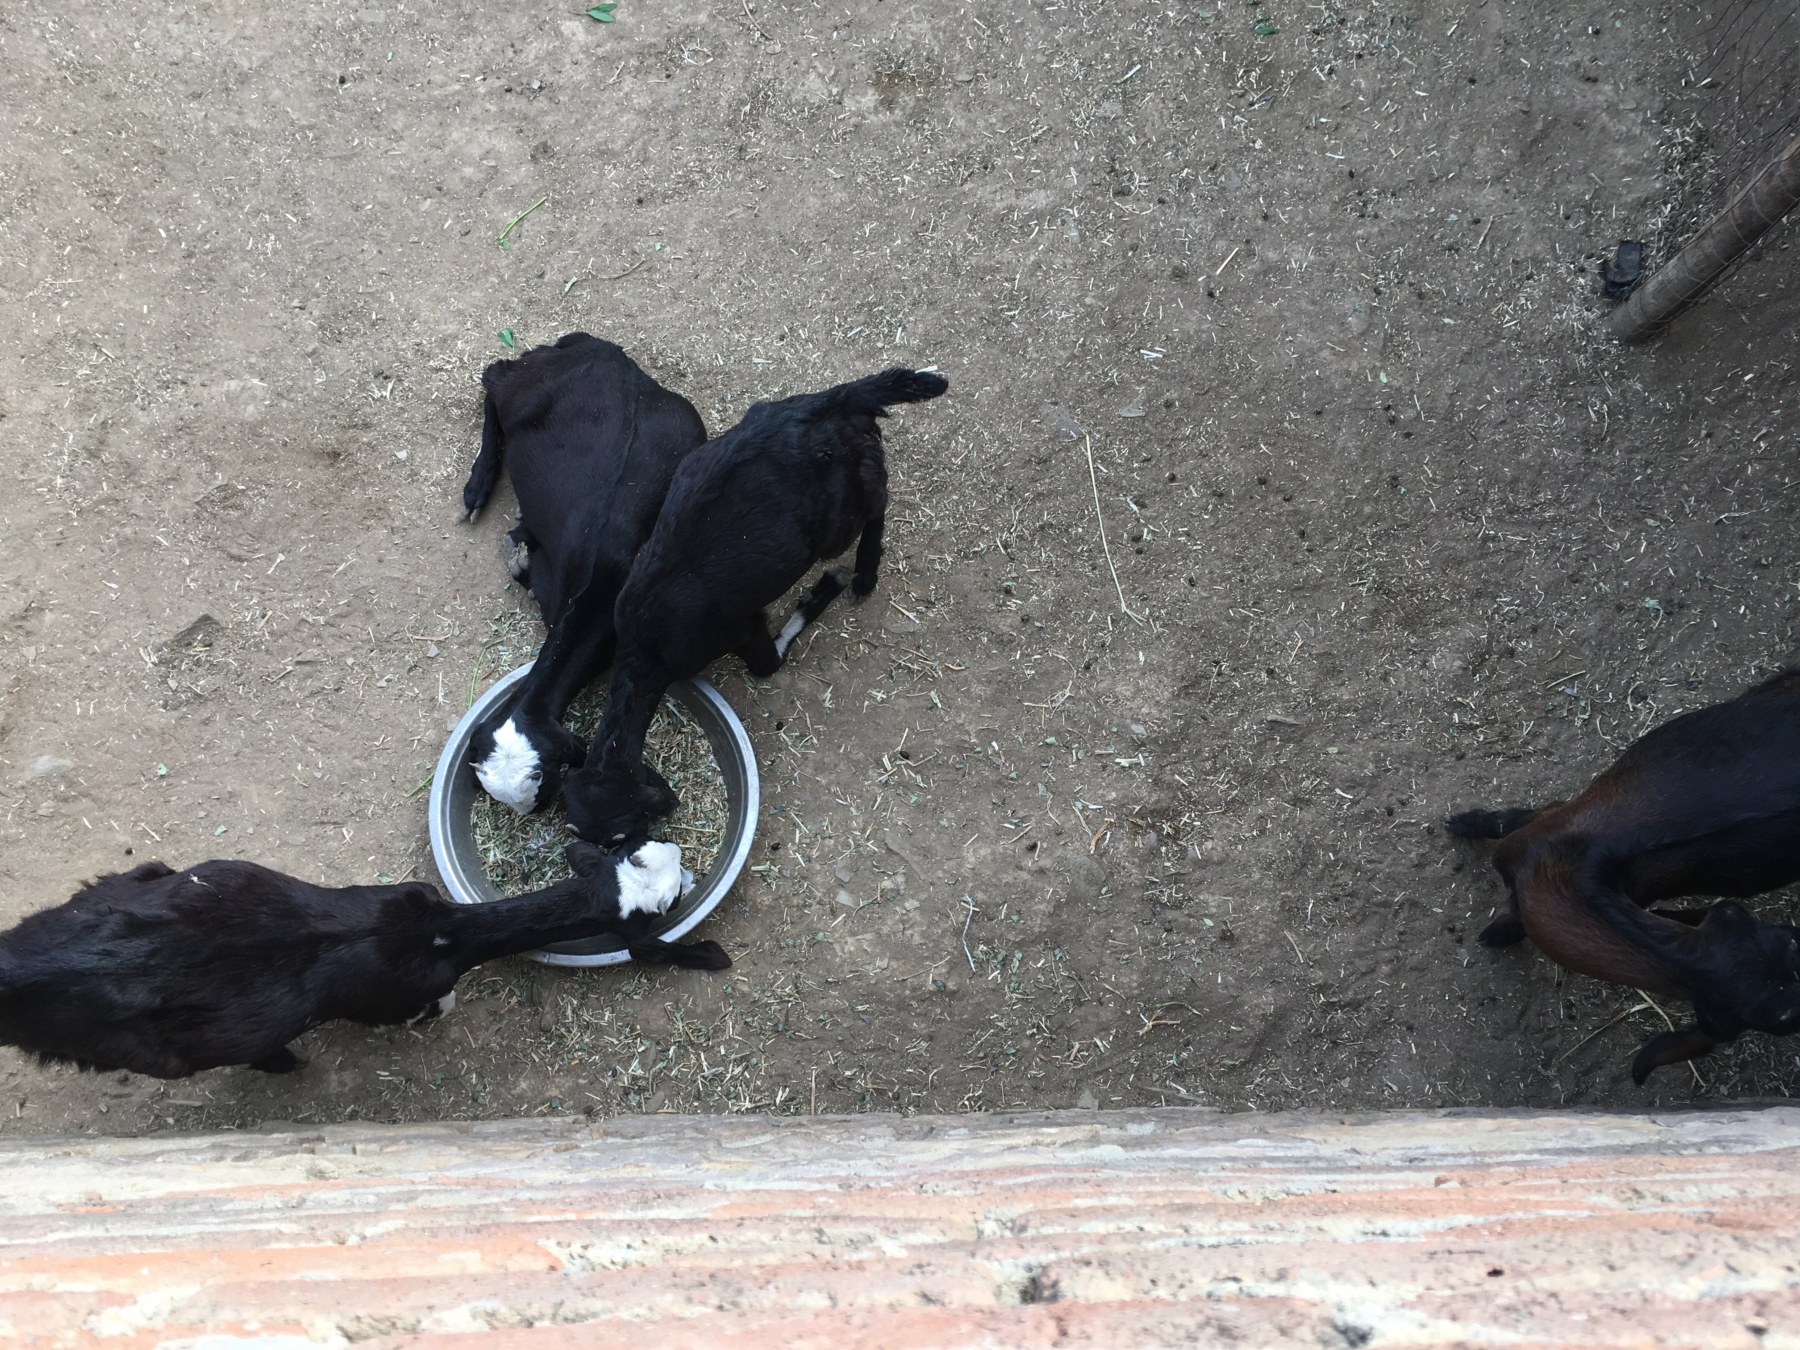 Baby goats seen from above, eating from a bowl